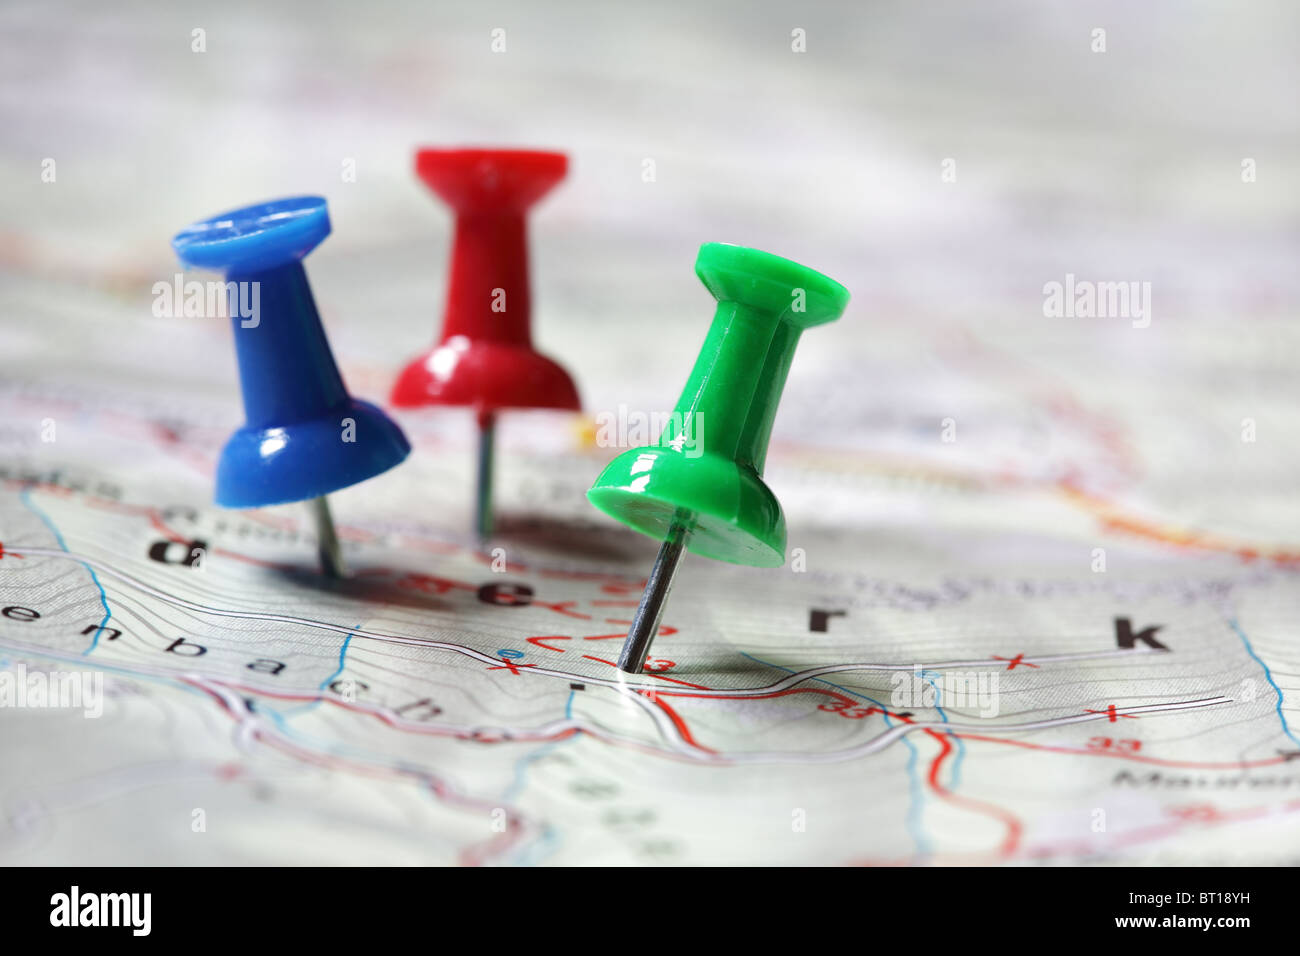 Travel destination marked with push pins - Stock Image